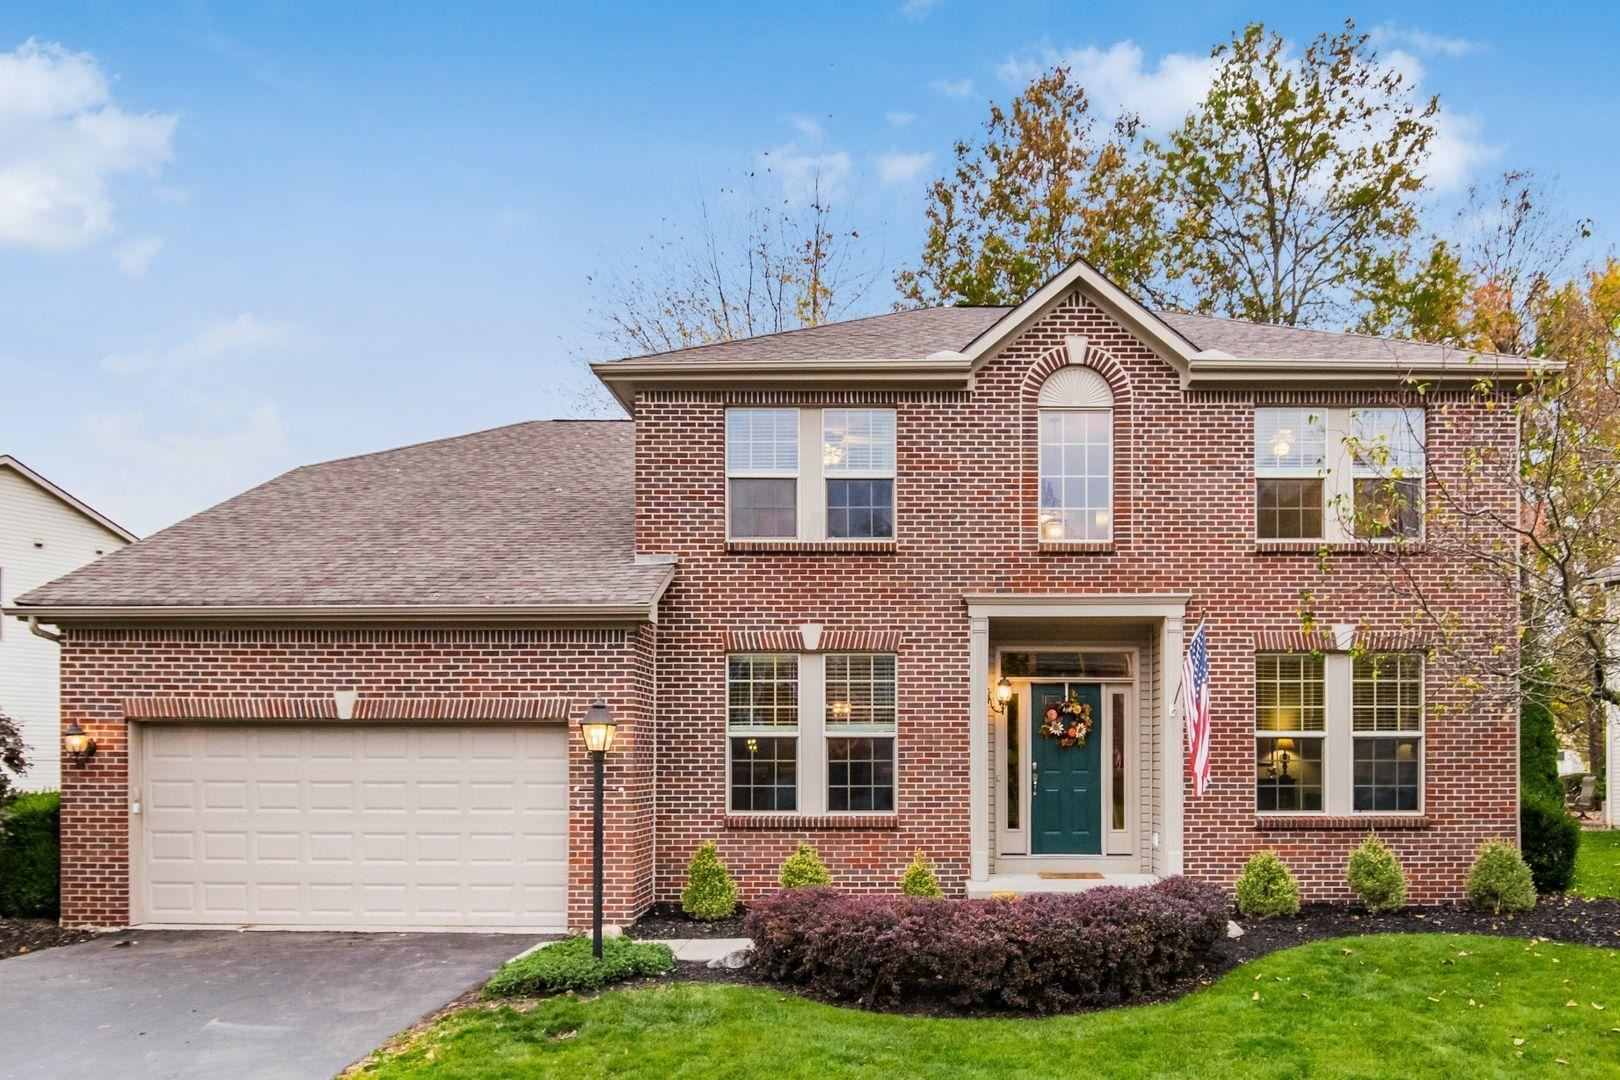 Photo of 6294 Beringer Drive, Westerville, OH 43082 (MLS # 220038298)